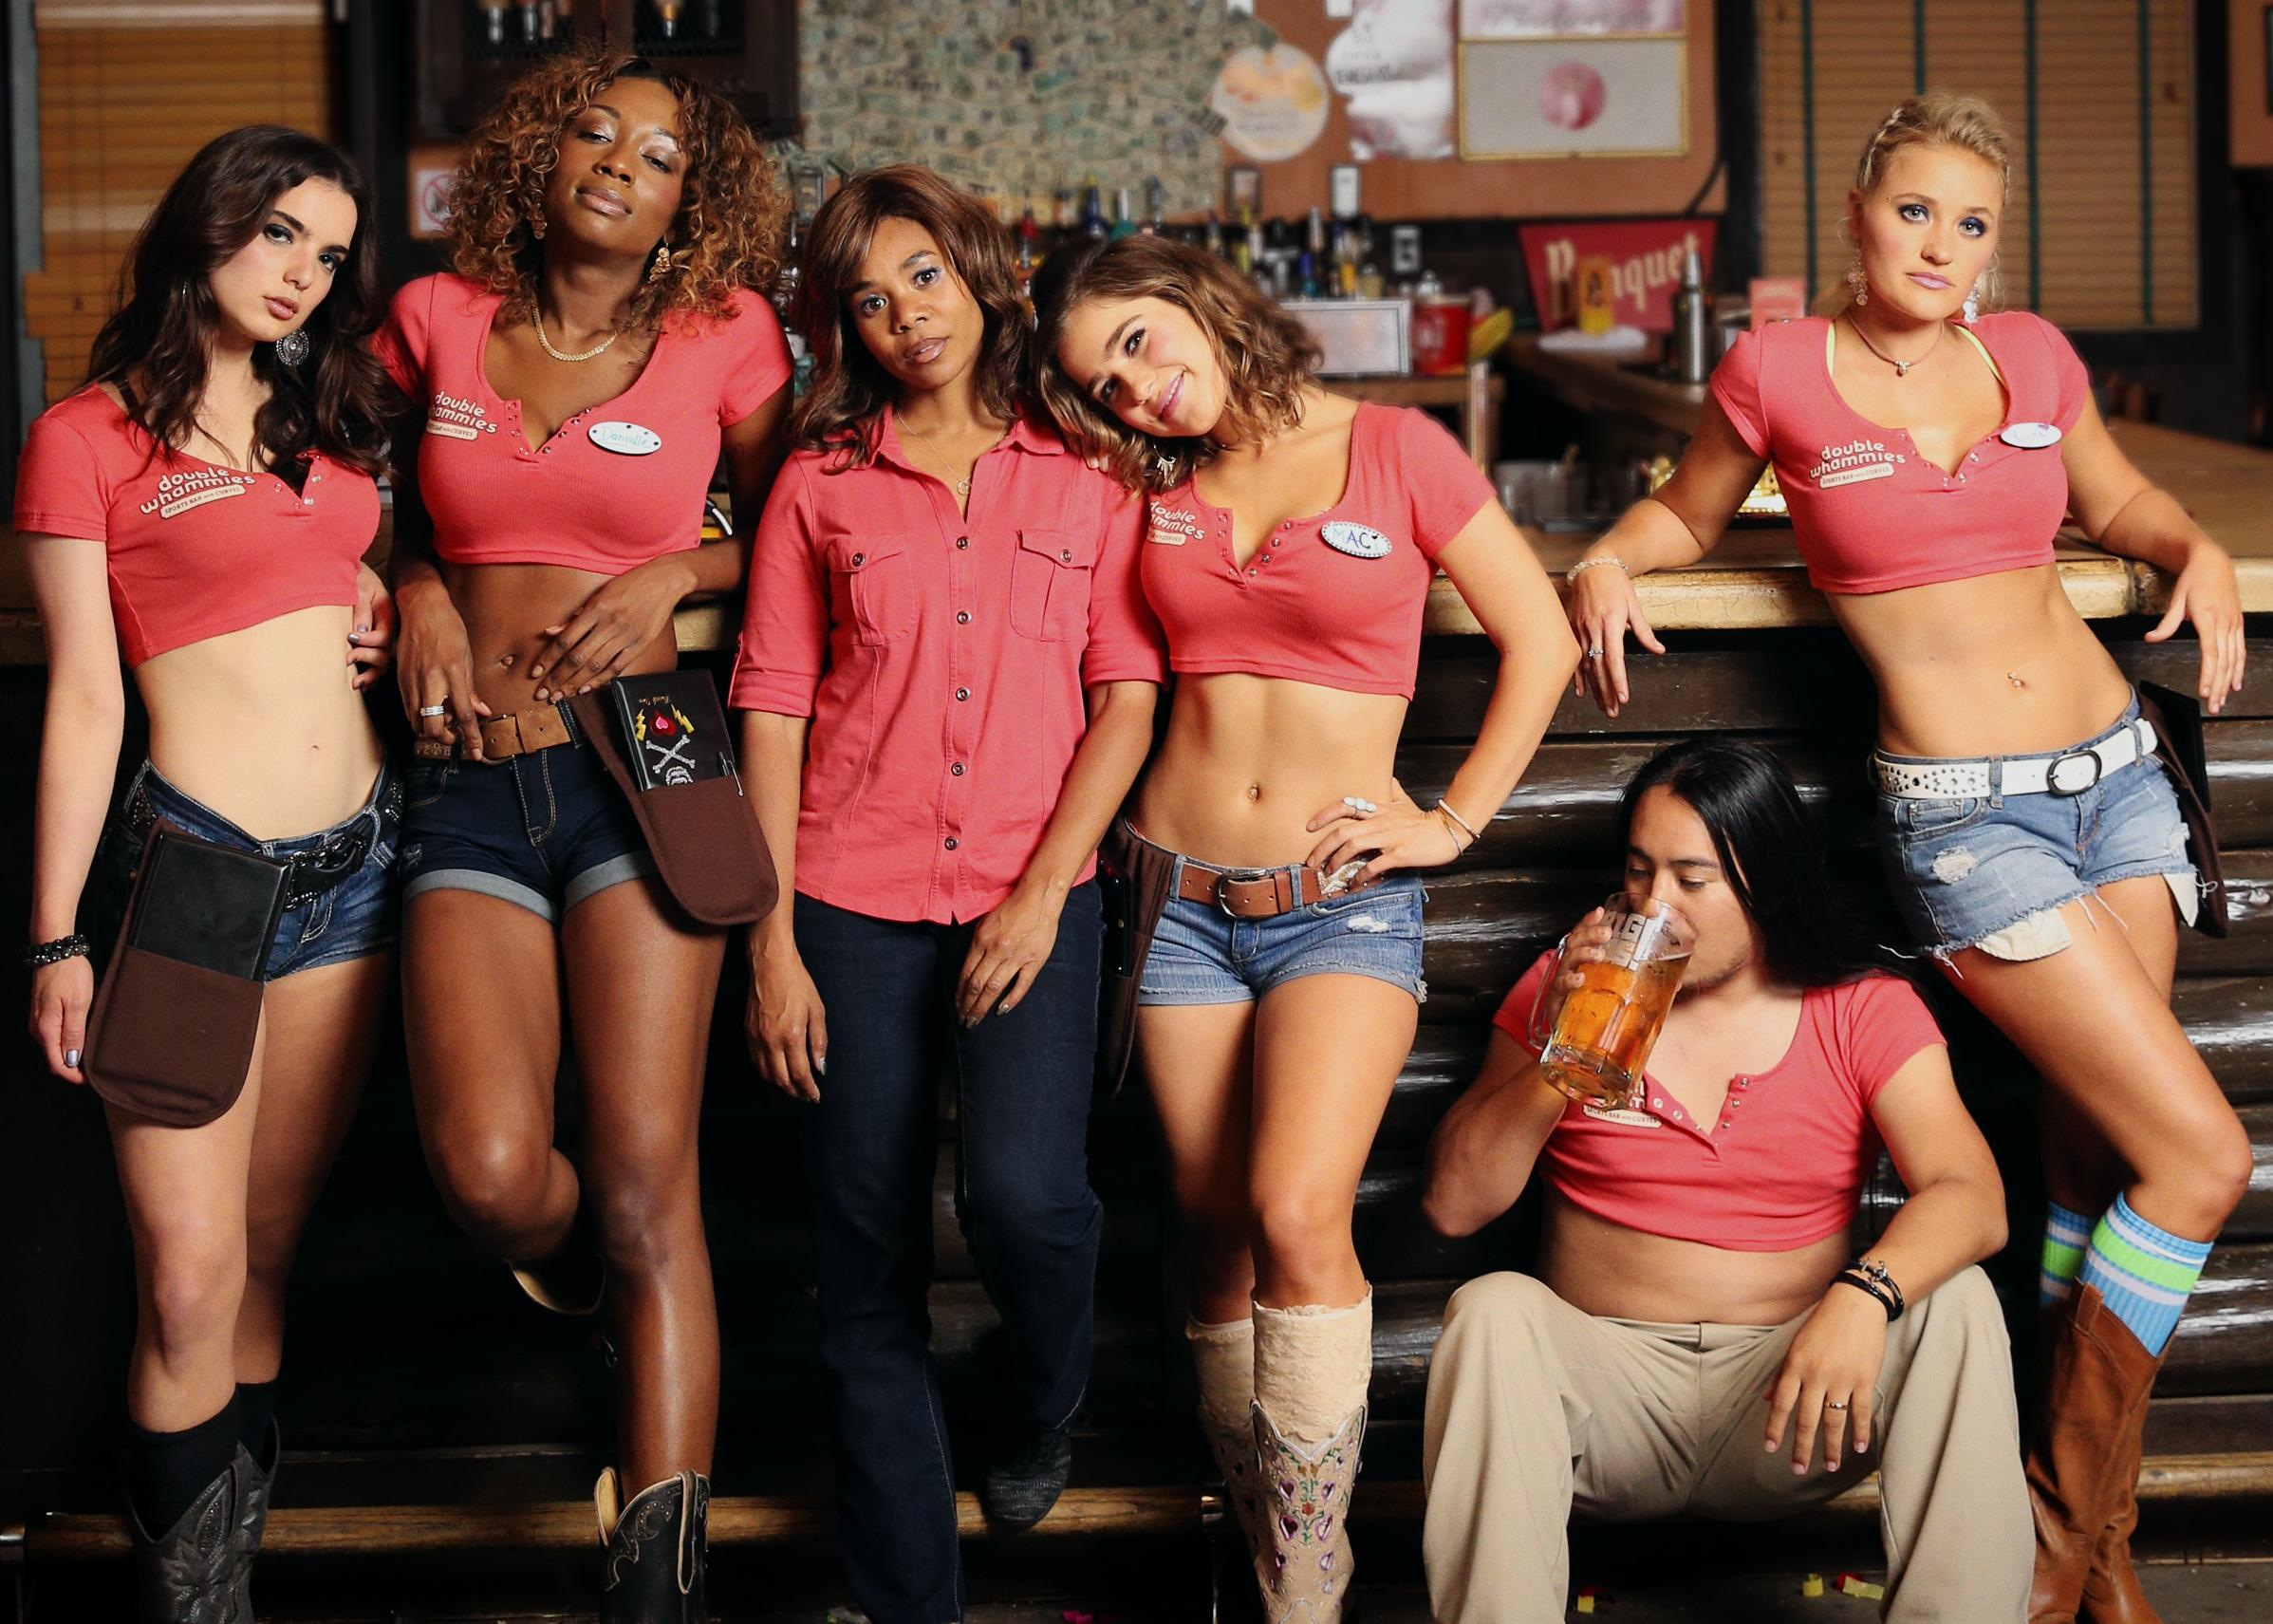 Support the Girls, set in a Hooters-style bar, is an outstanding, quietly feminist comedy